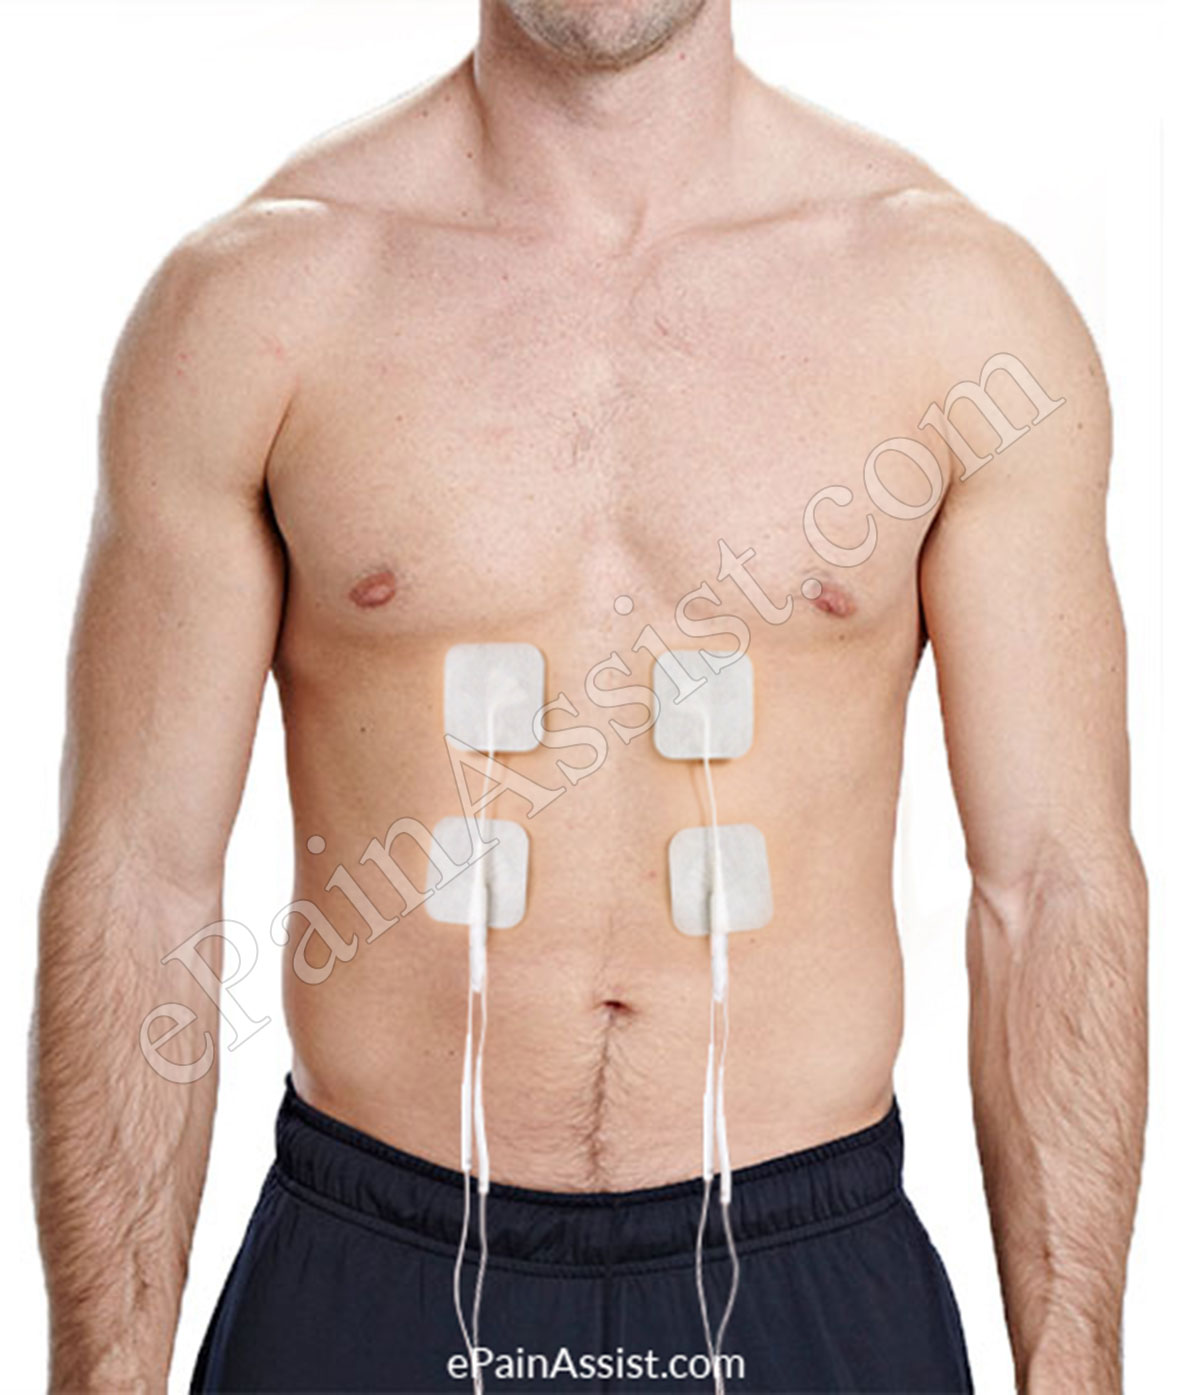 Electrical Muscle Stimulation (EMS)